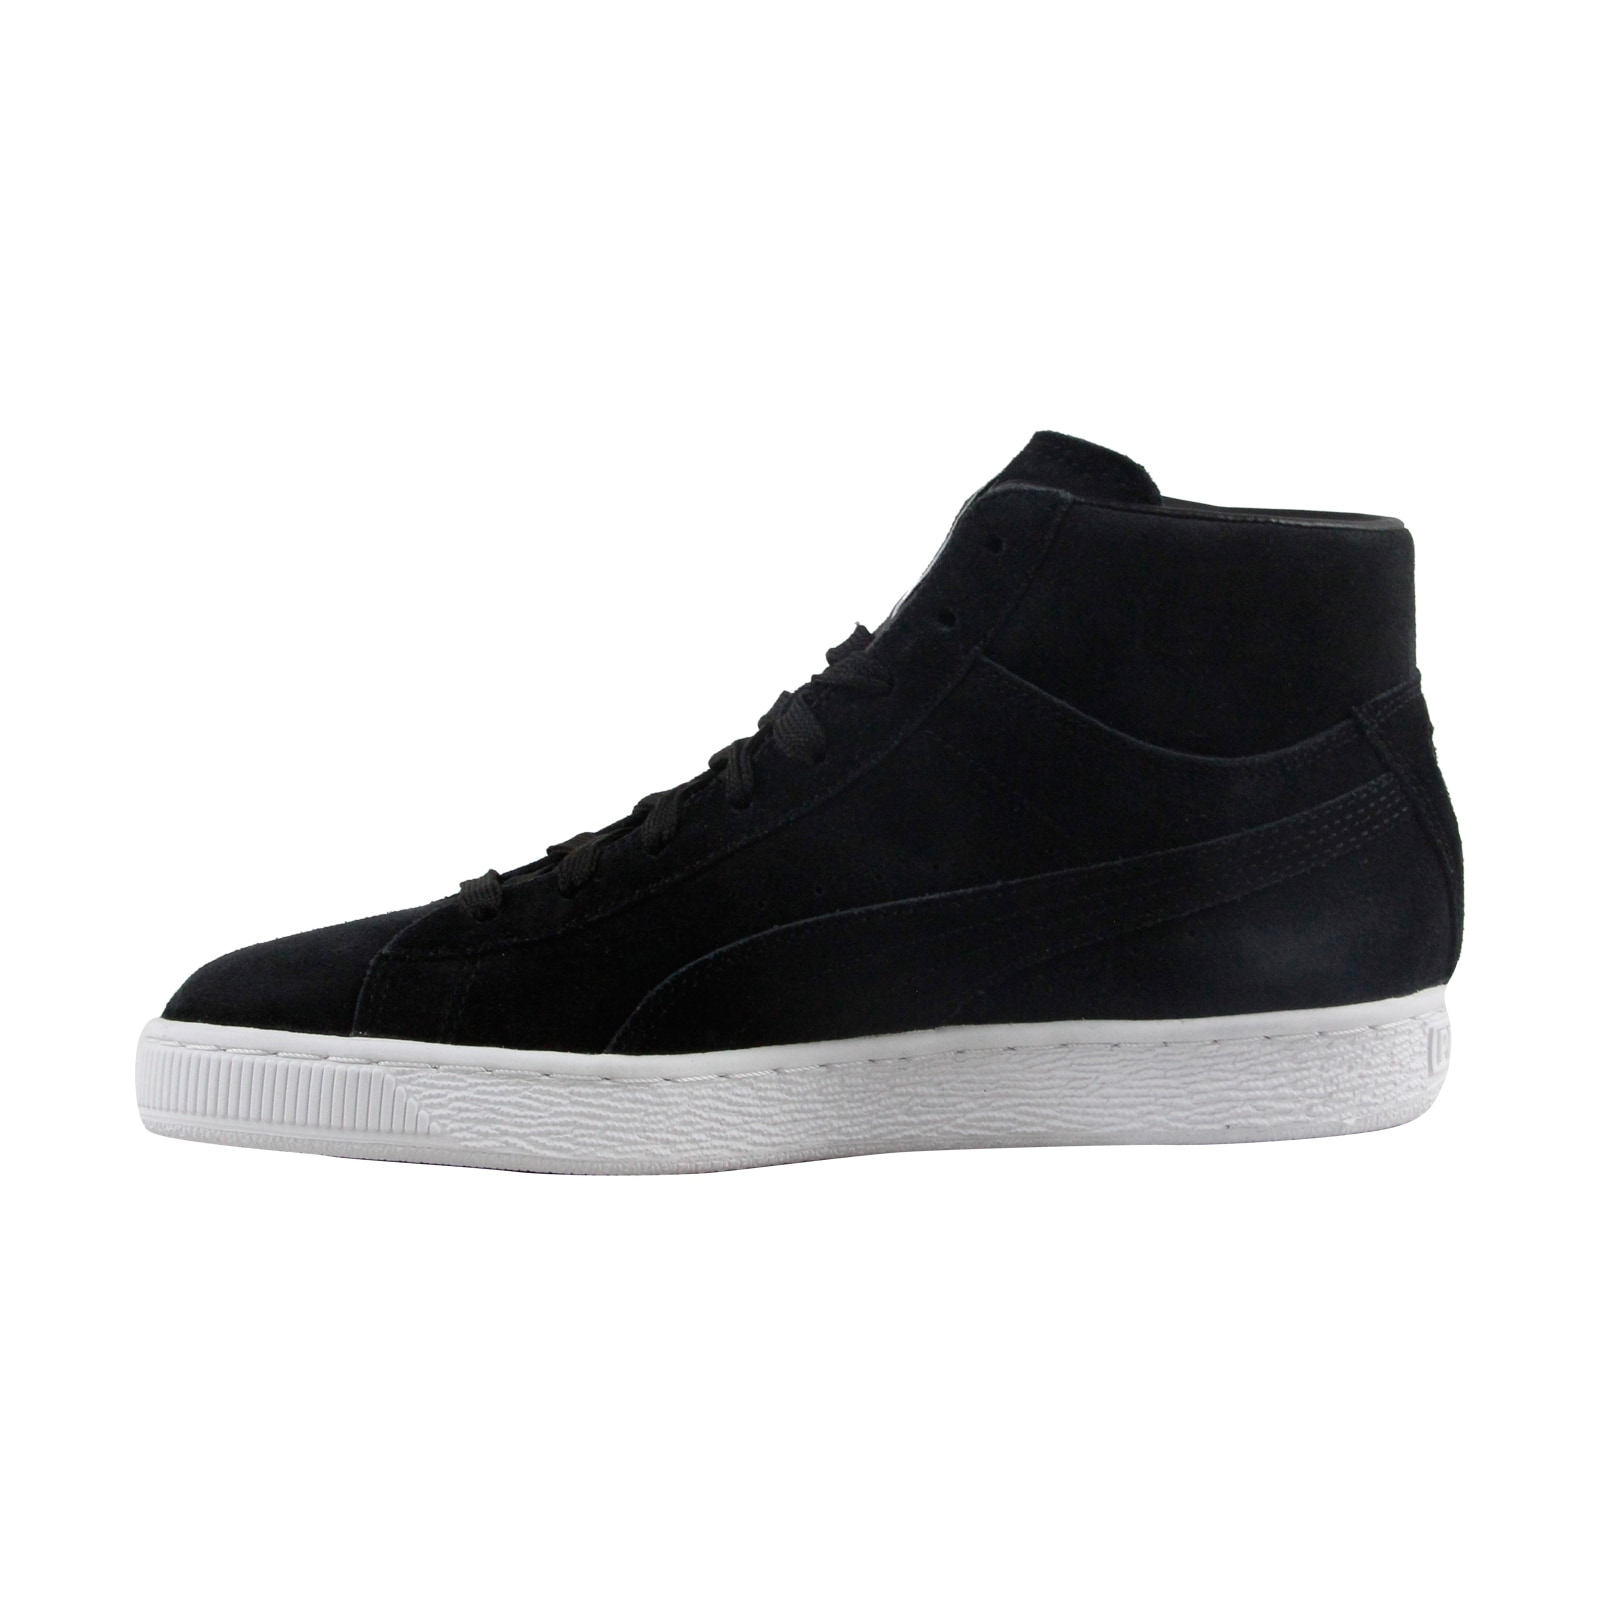 6f3d317d04c2 Shop Puma Classic Mid Mens Black Suede High Top Lace Up Sneakers Shoes -  Free Shipping Today - Overstock - 22468682